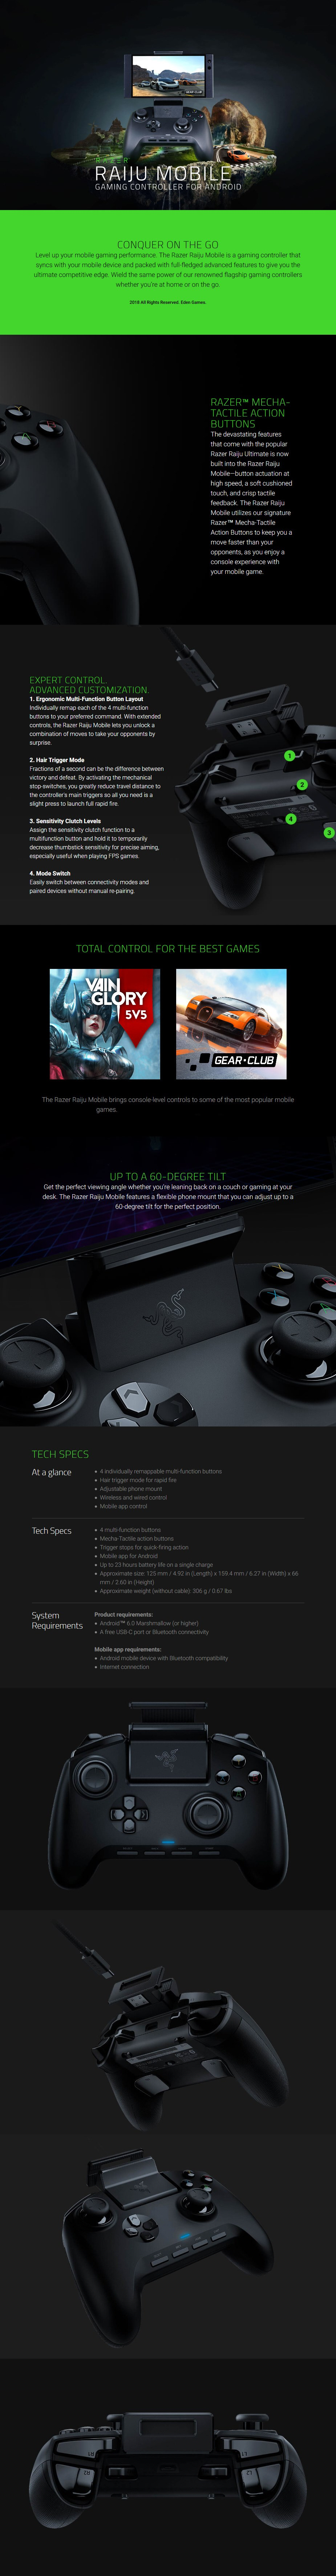 Razer Raiju Mobile Gaming Controller For Android Rz06 02800100 R3m1 Mwave Com Au Designed to sync with your mobile device, it's packed with advanced features to give you the ultimate competitive. razer raiju mobile gaming controller for android